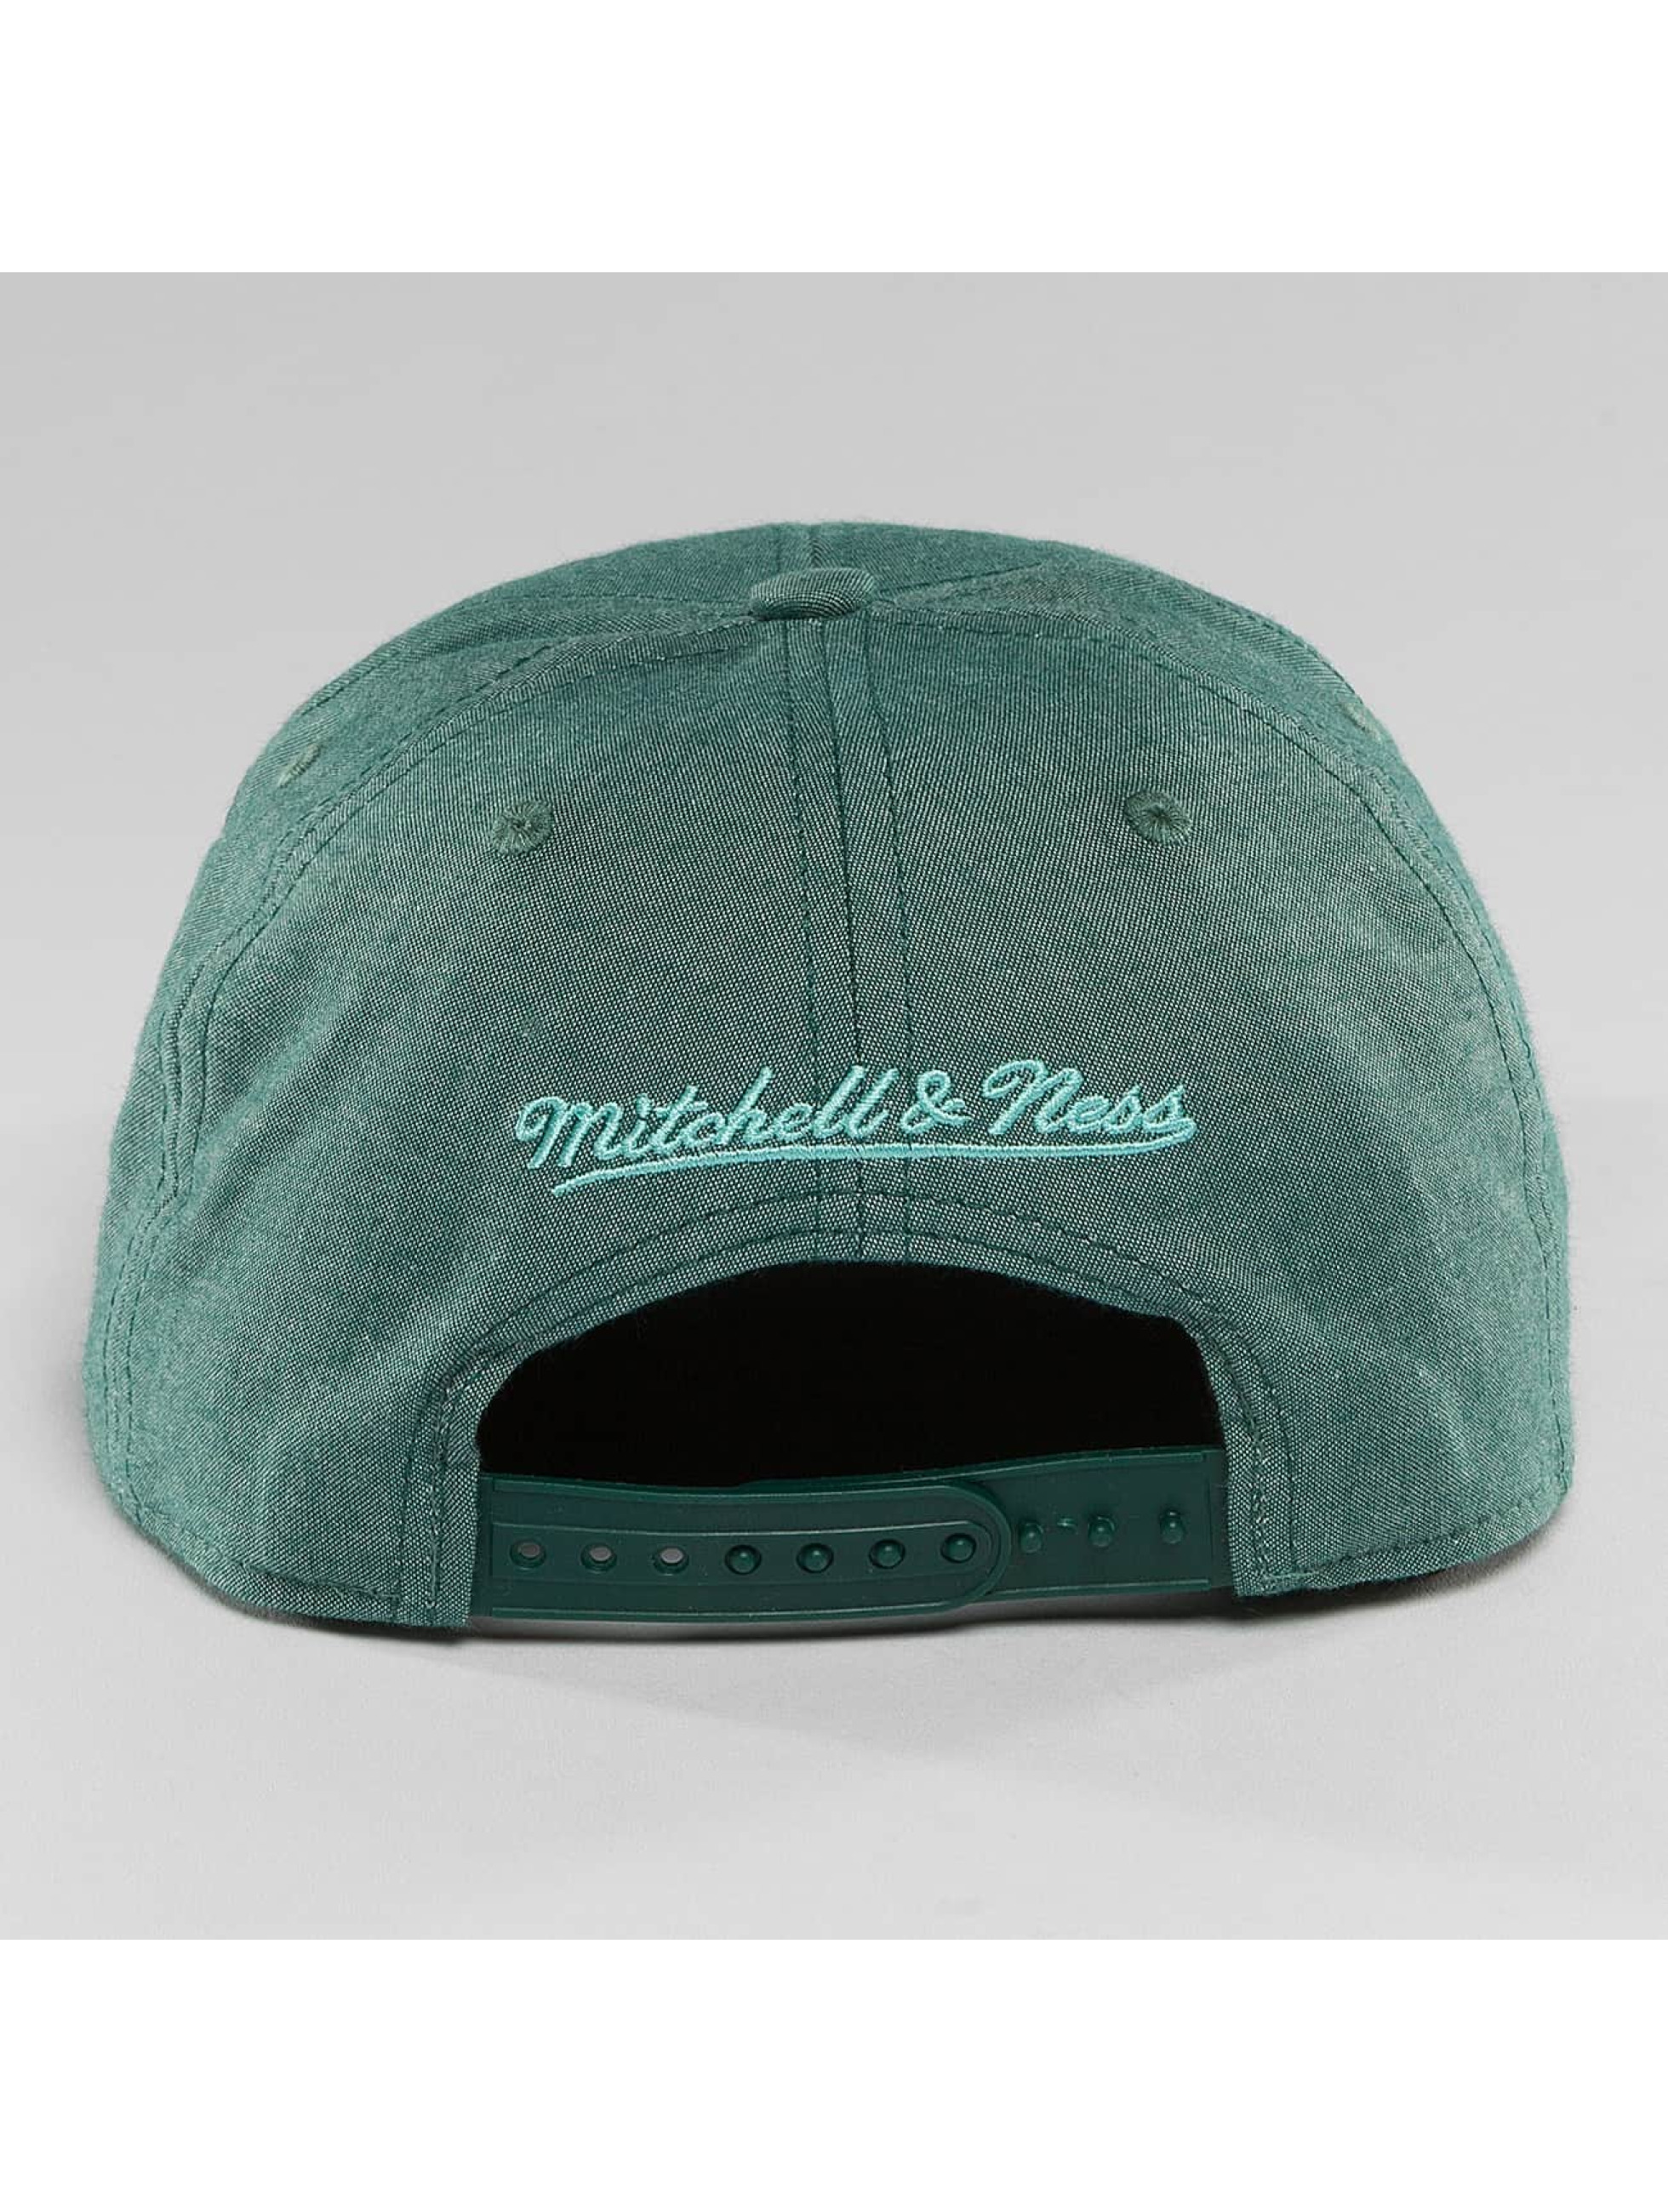 Mitchell & Ness Casquette Snapback & Strapback Italian Washed olive